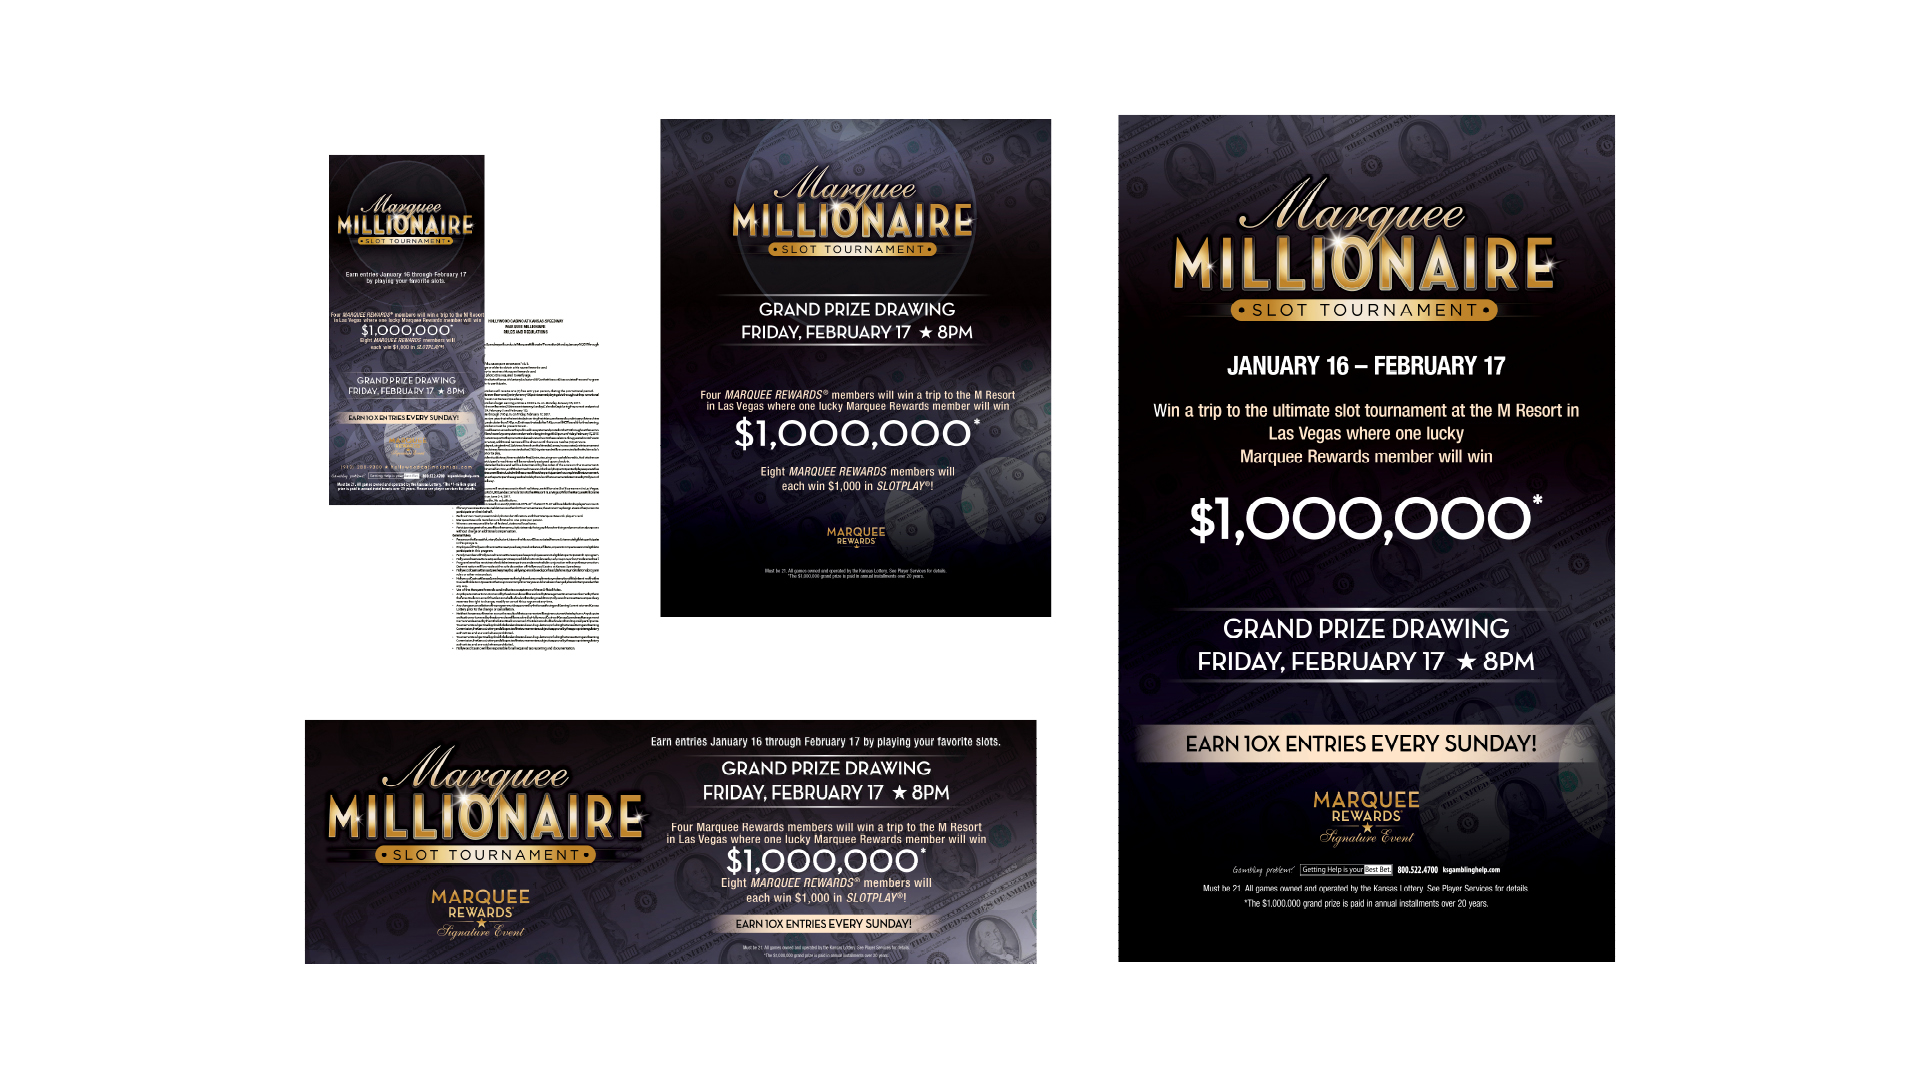 Marquee Millionaire Promotional Materials